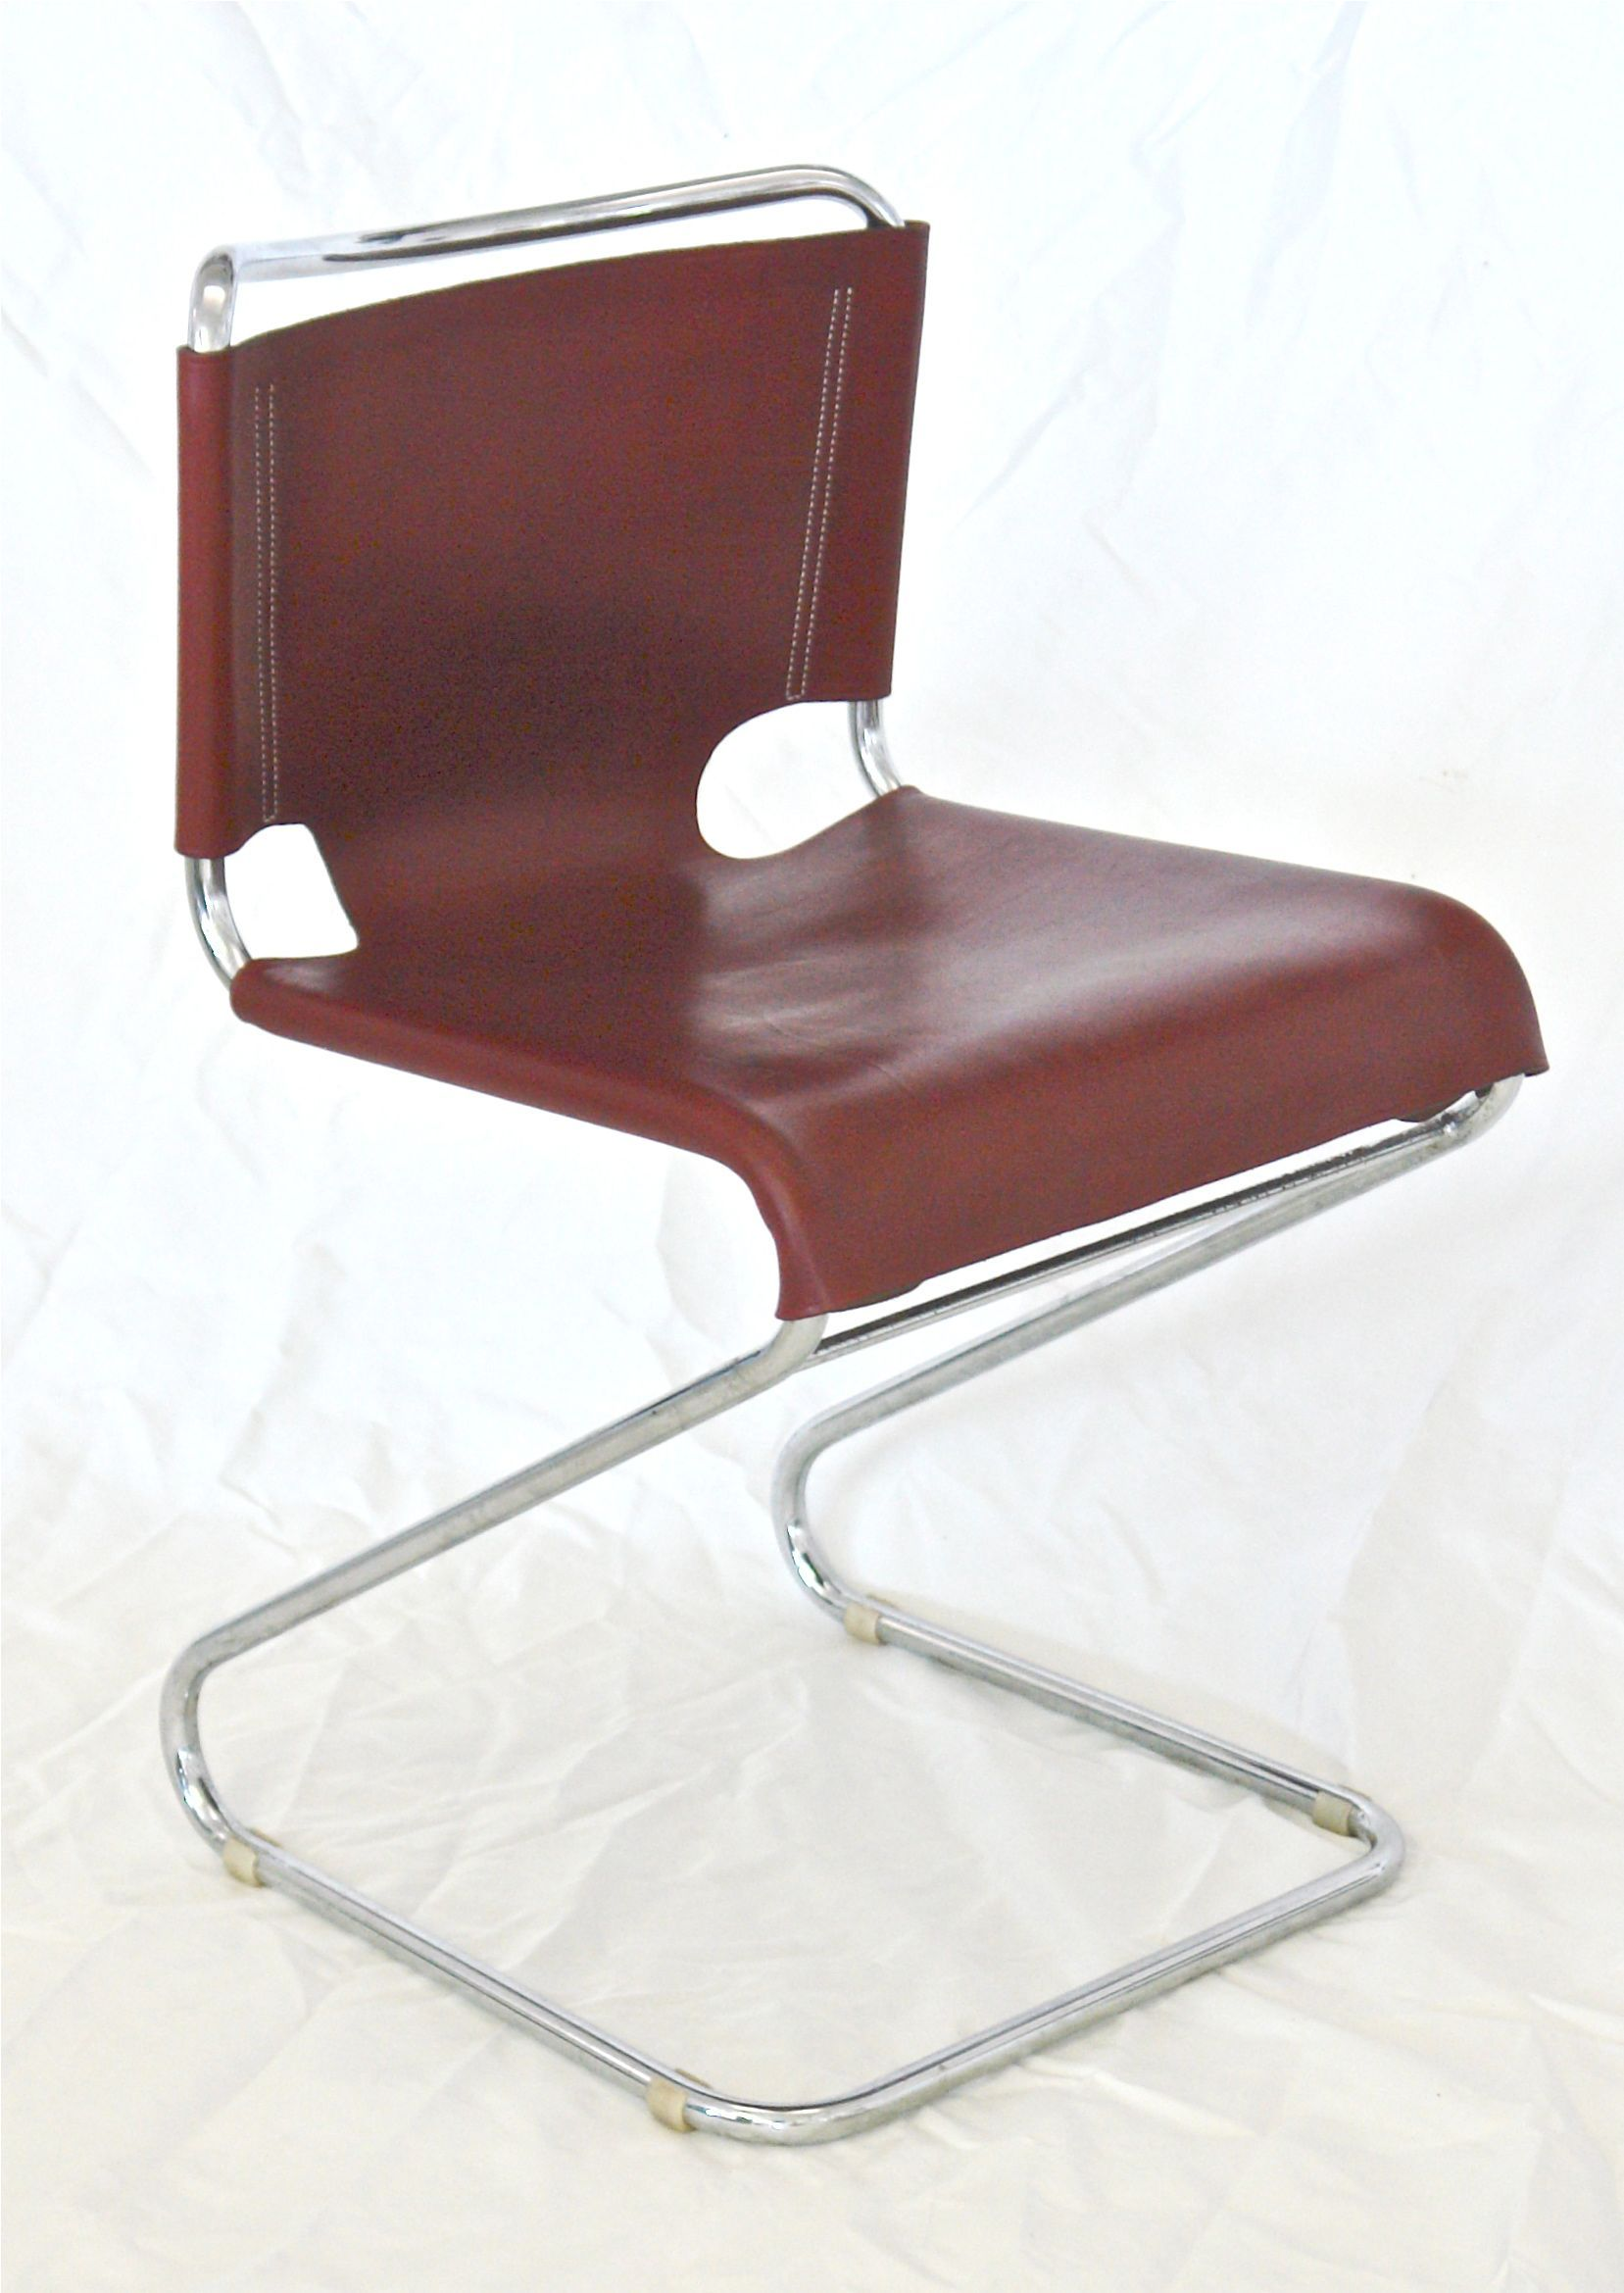 Vintage Ligne Roset Pop Chair Design Good For Dining Seat Ideas